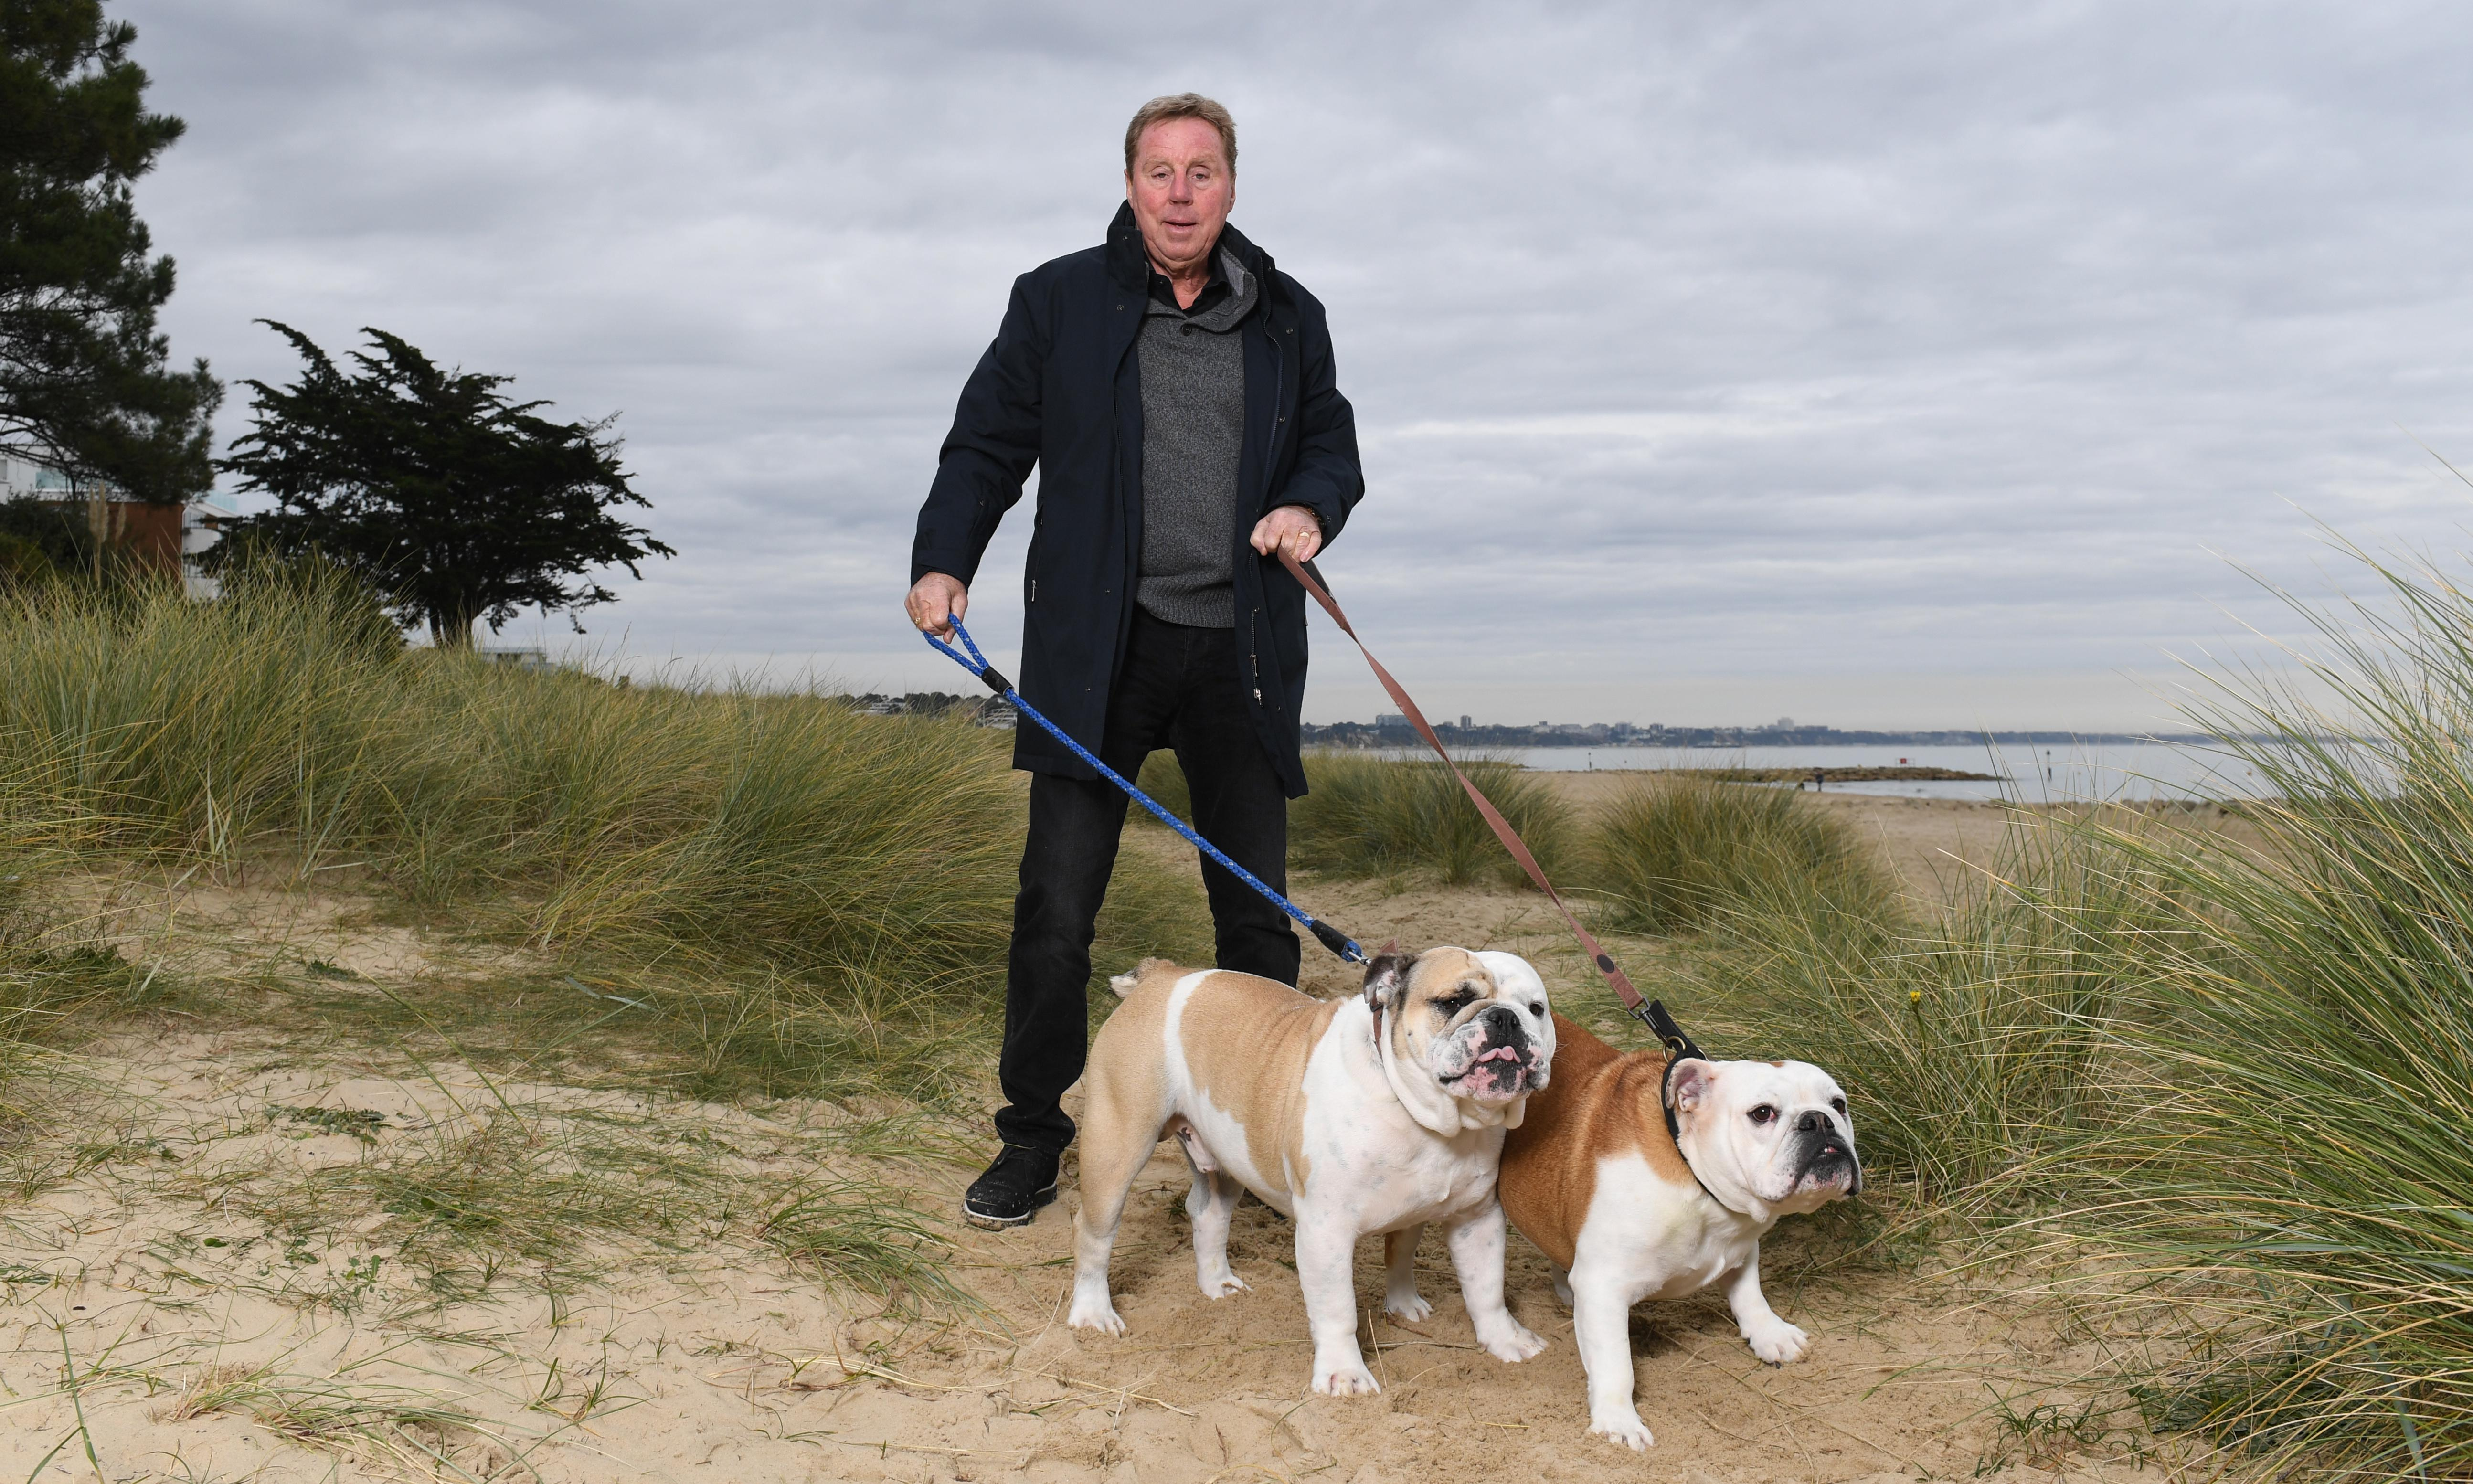 Harry Redknapp: 'Without football I'd still be on the docks'